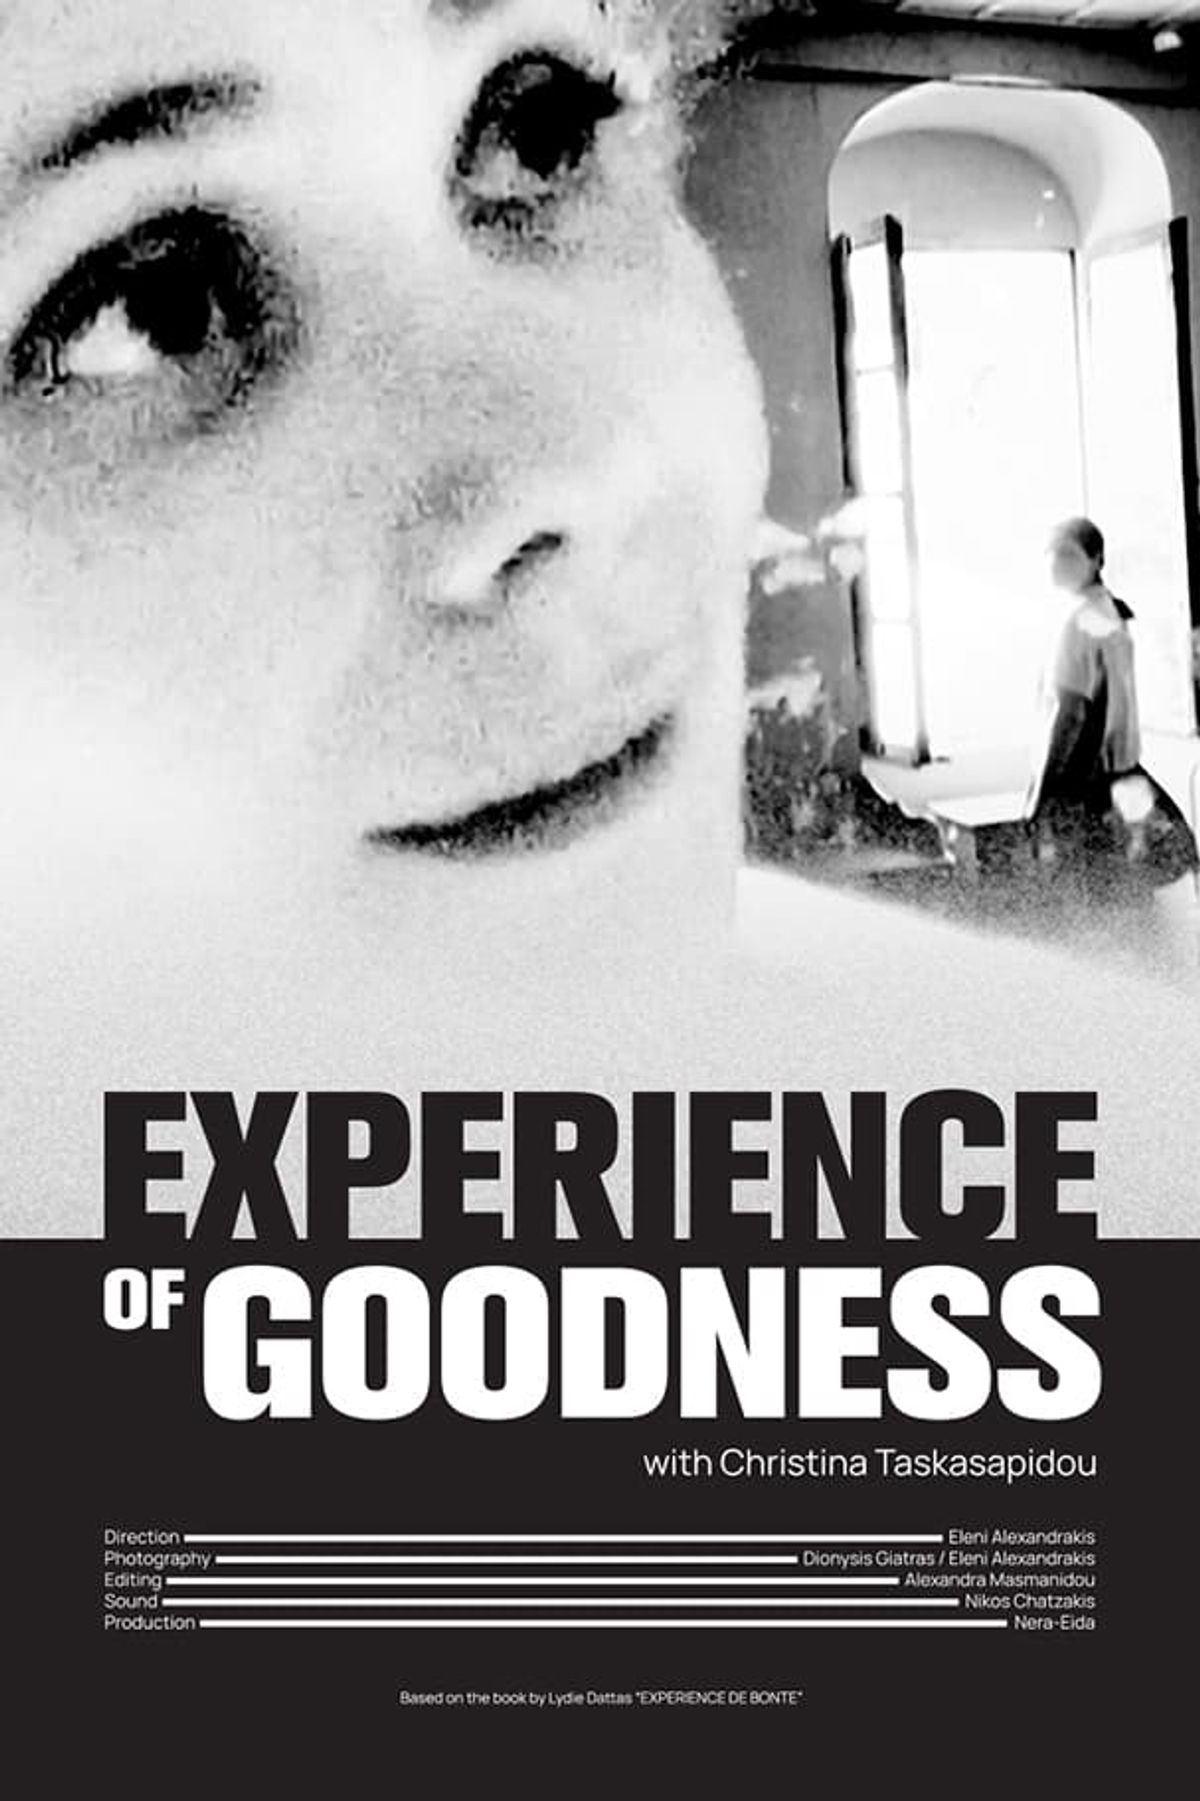 Experience of Goodness